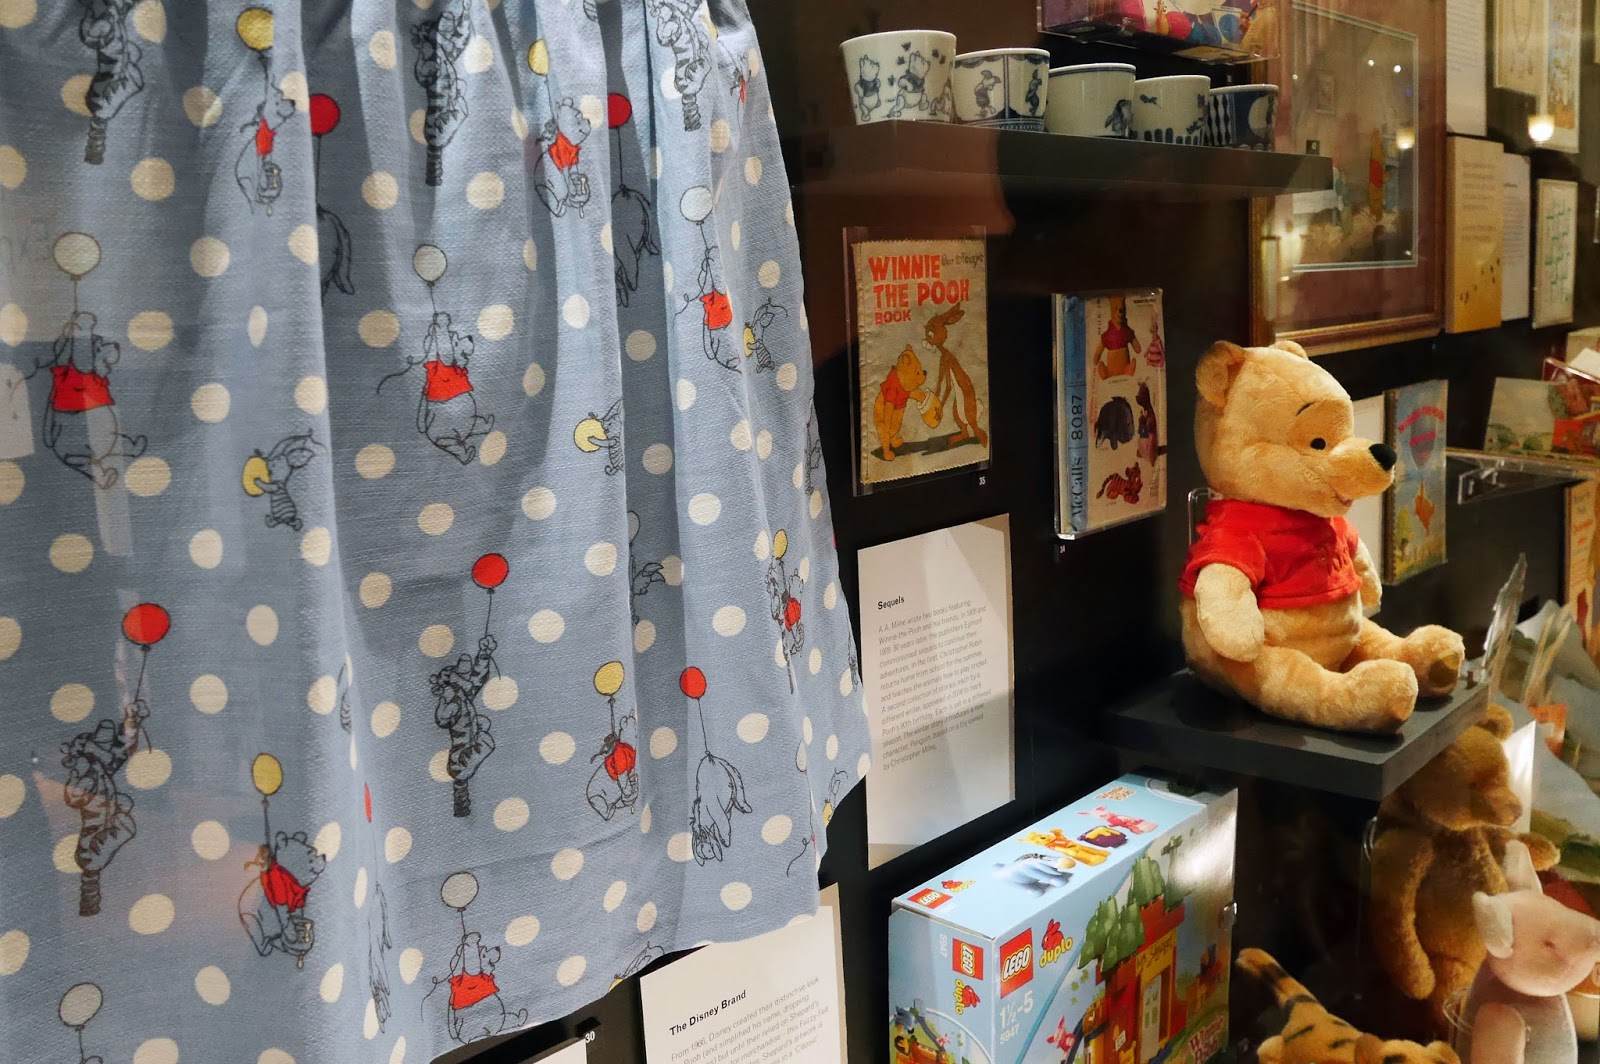 Winnie the Pooh memorabilia at the Victoria and Albert Museum